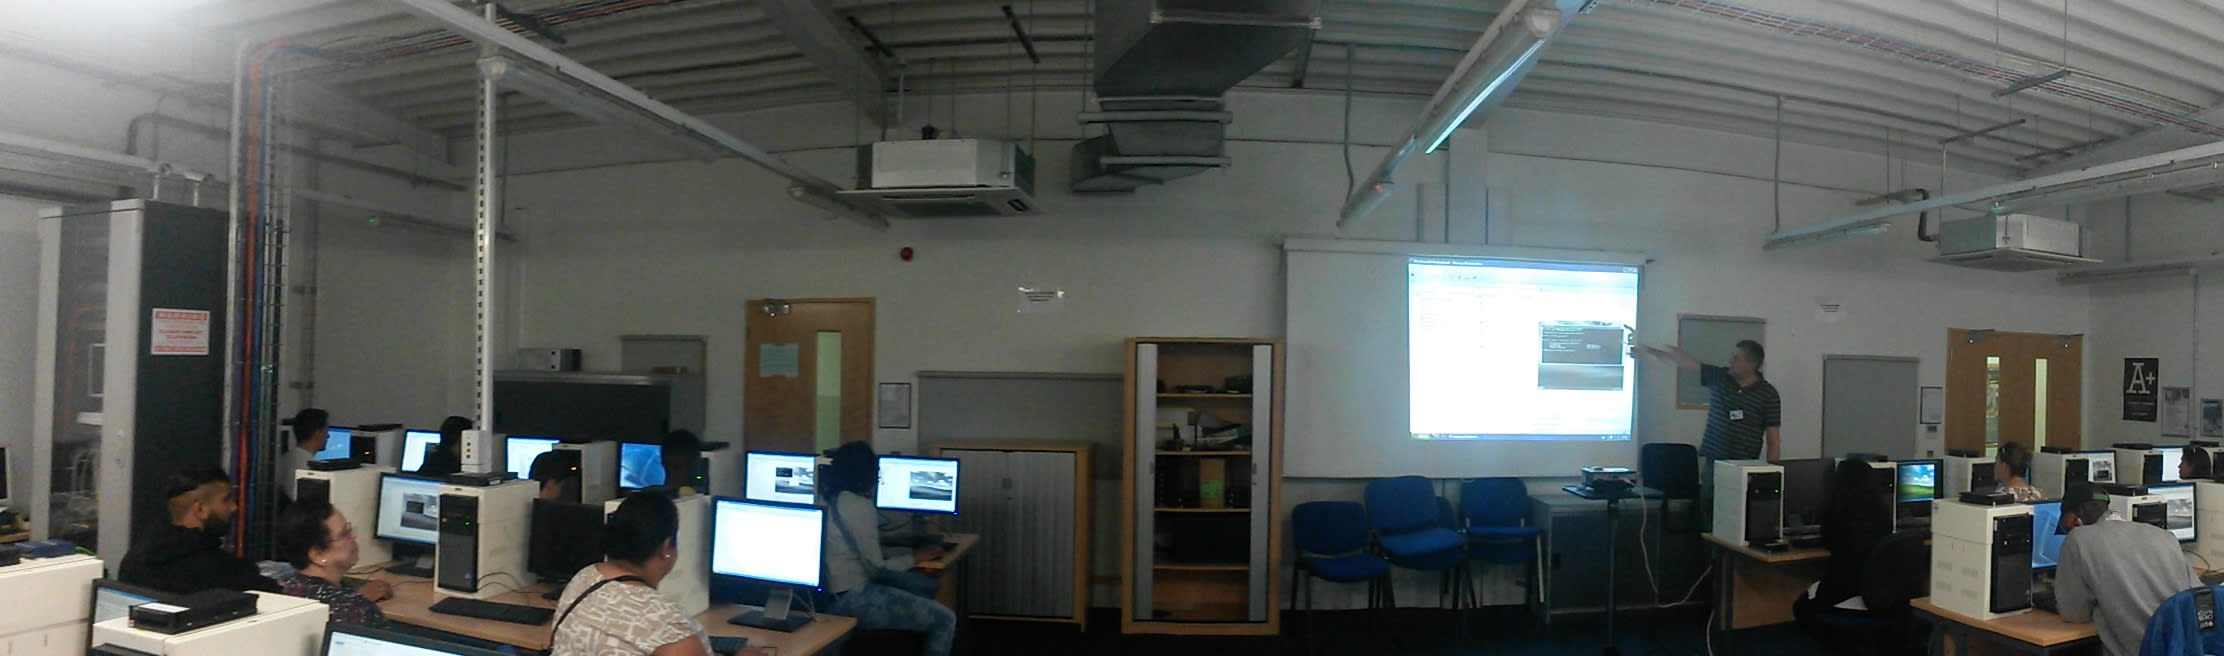 Knowledge Dock labs with Mike teaching